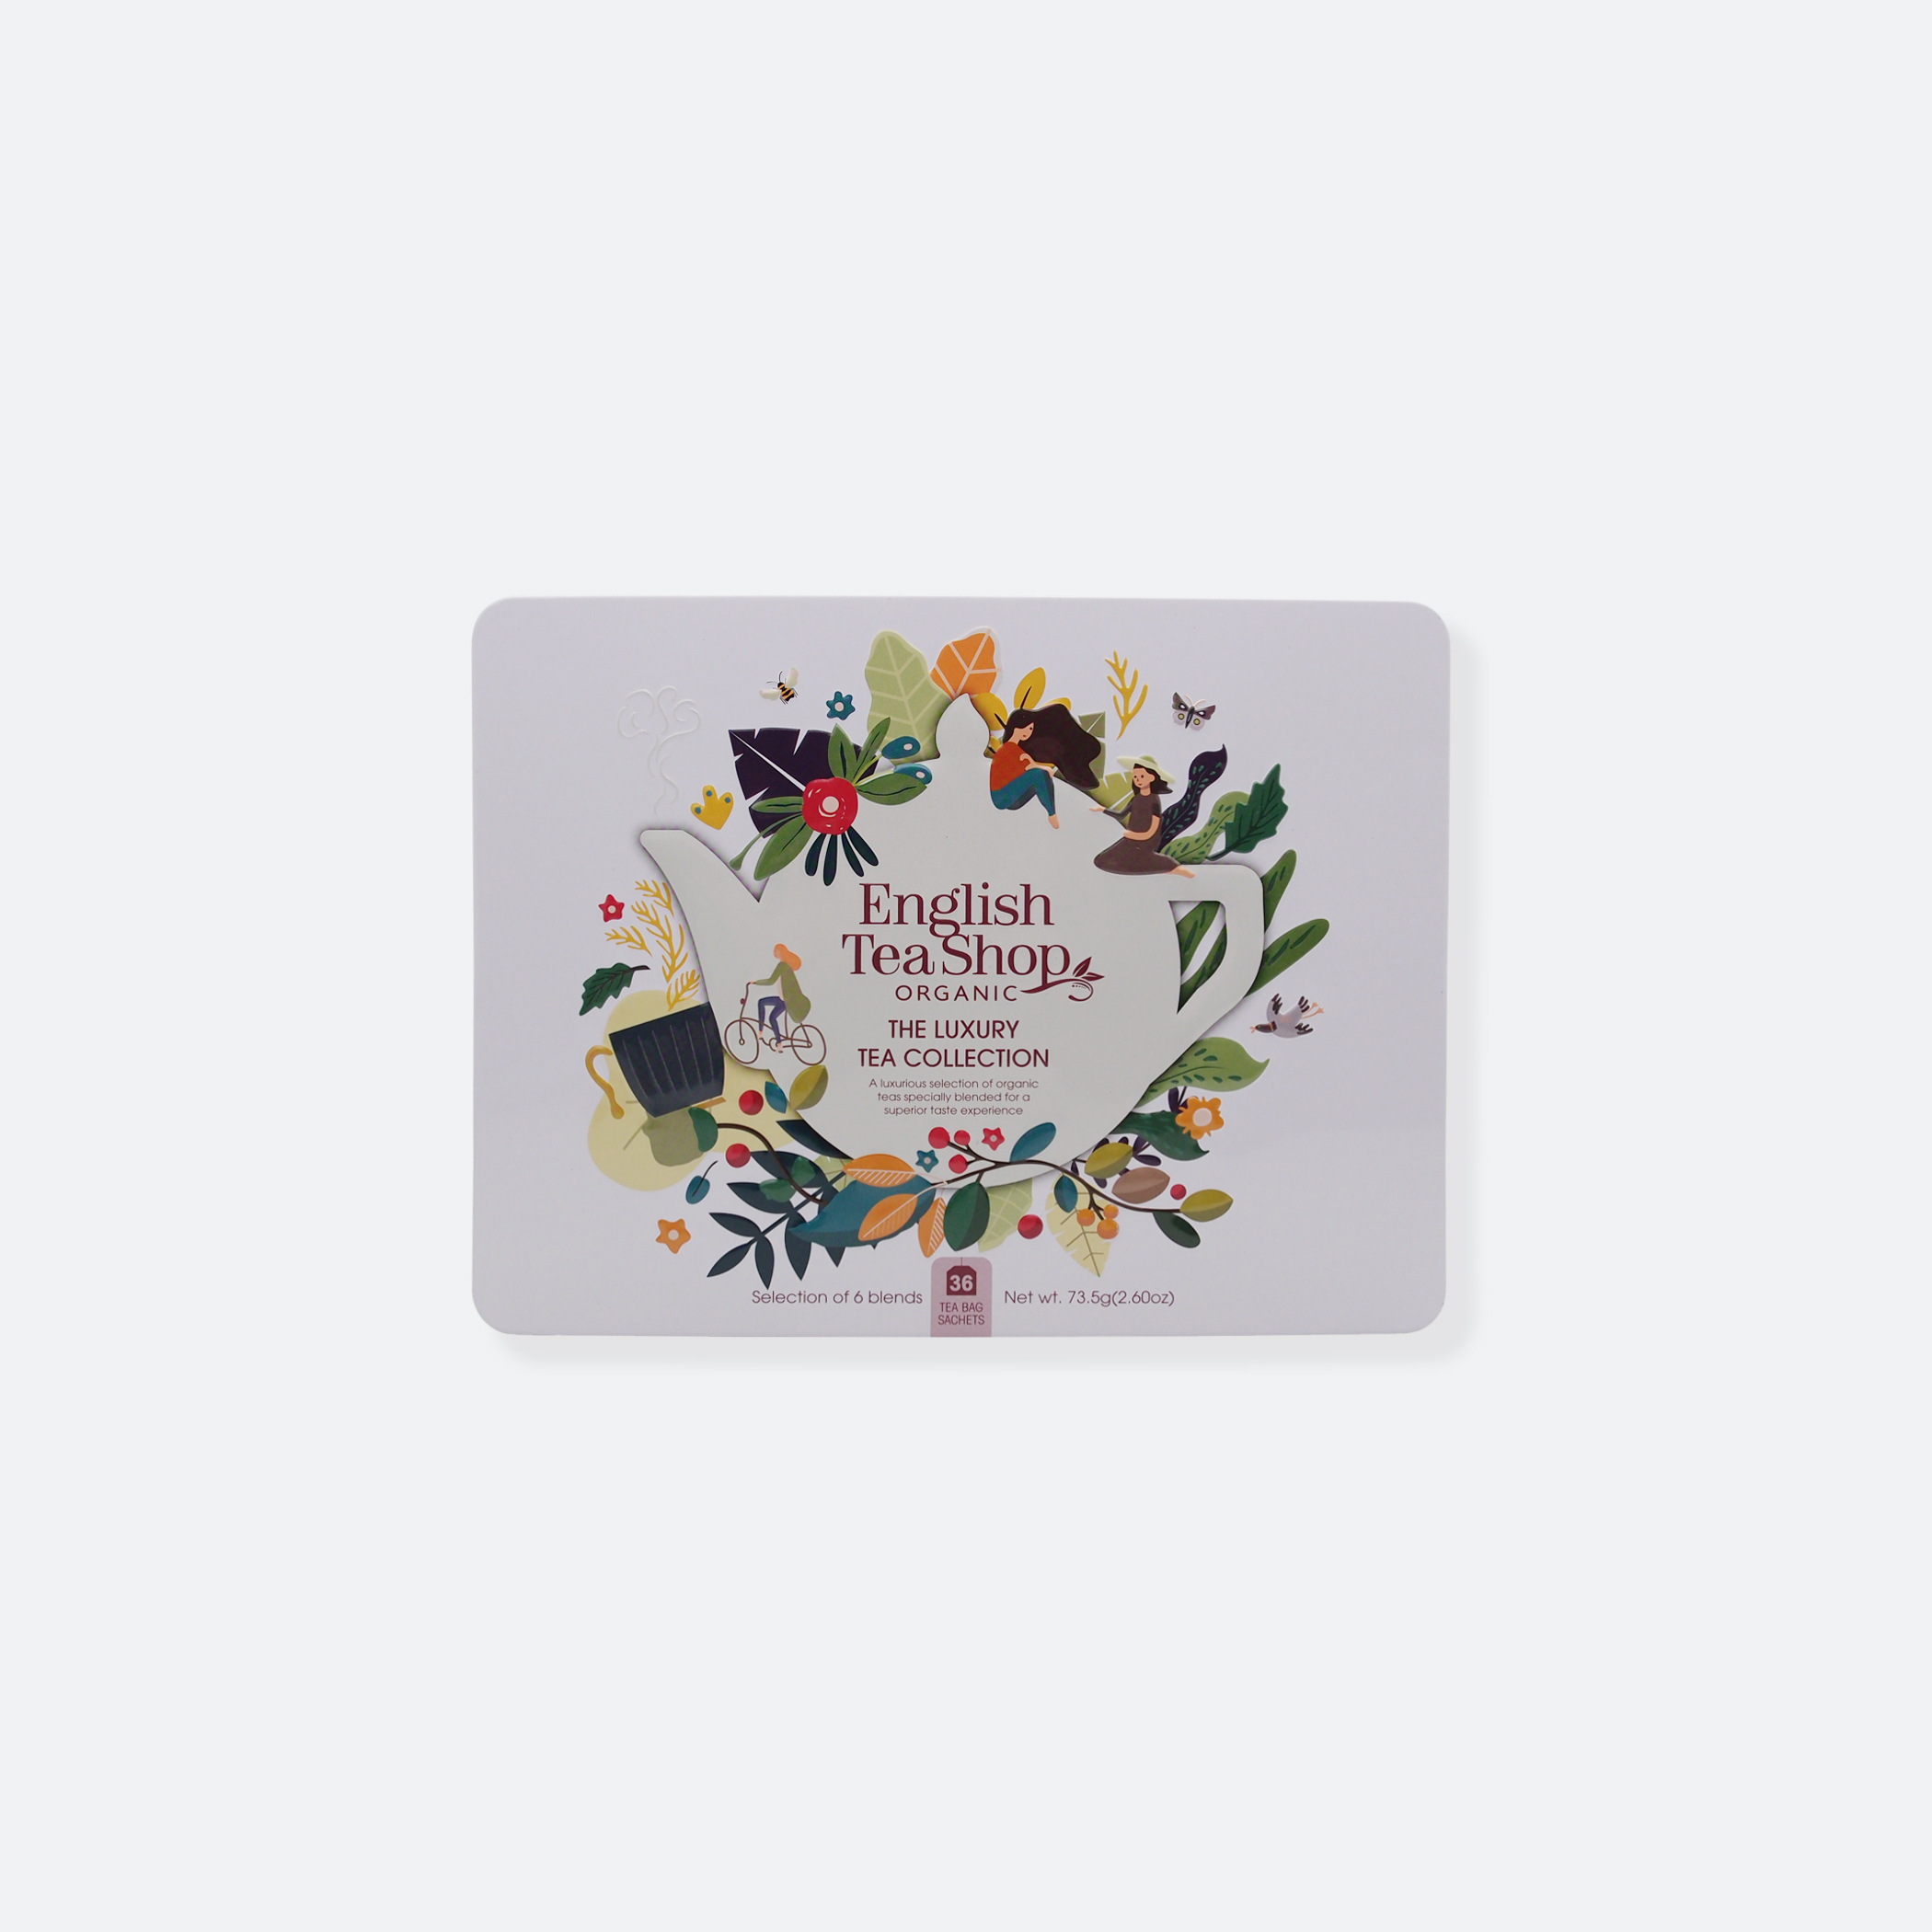 OhMart English Tea Shop Organic - The Luxury Tea Collection 1